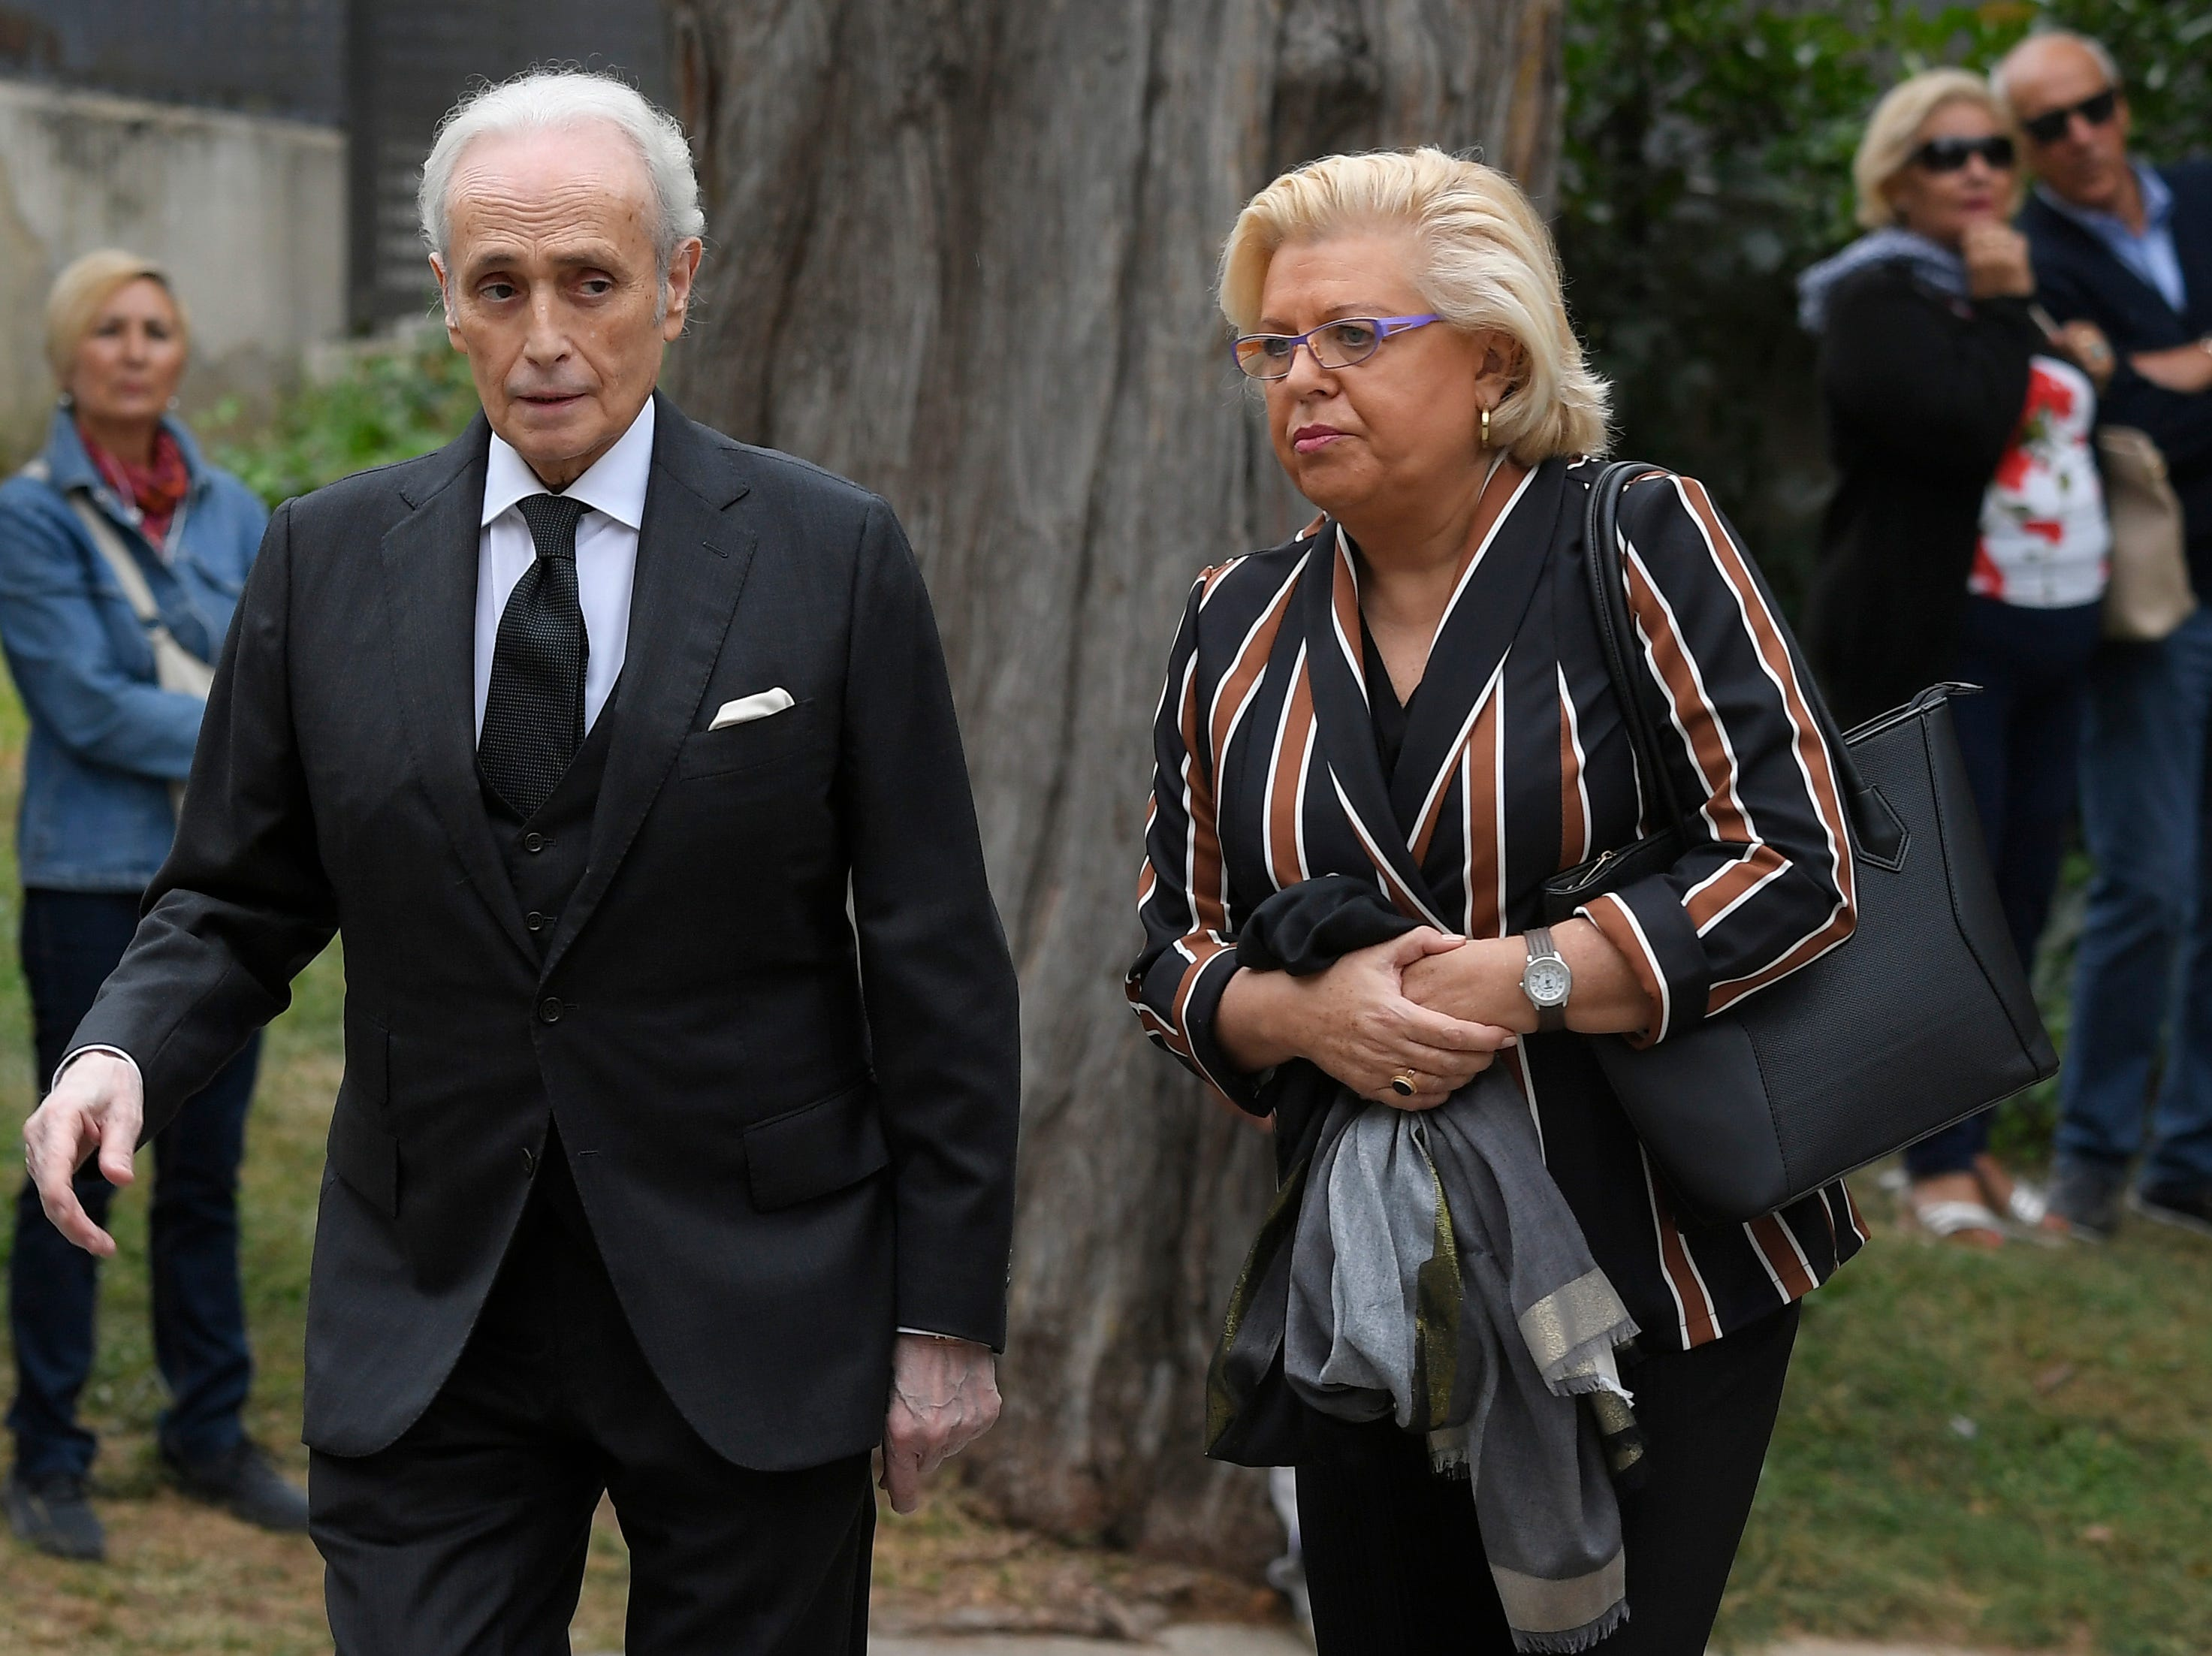 Spanish tenor Jose Carreras arrives to attend the funeral for Spanish opera singer Montserrat Caballe in Barcelona on Oct. 8, 2018.